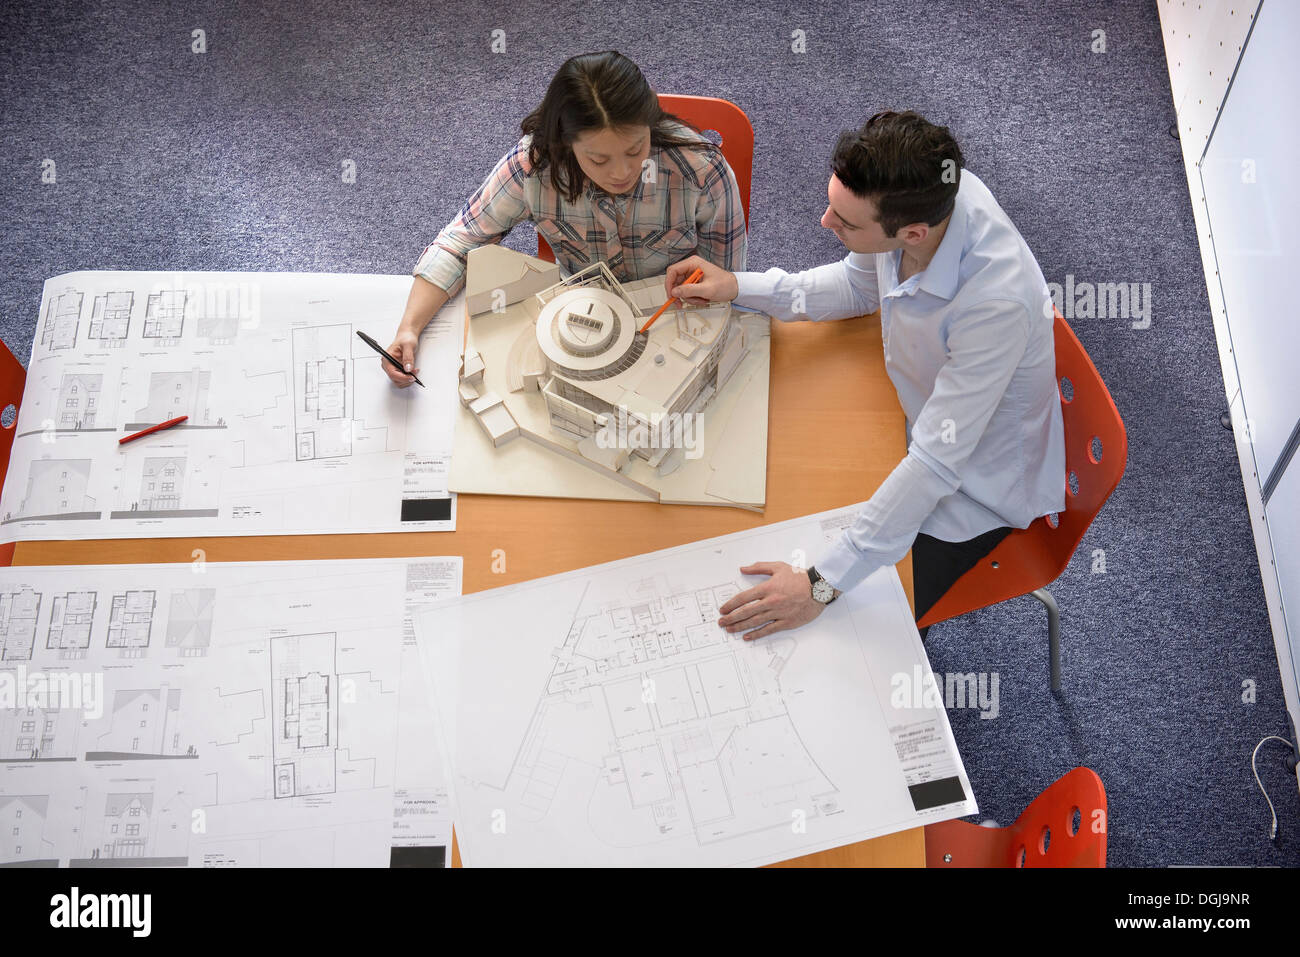 Two architects discussing plans and scale model building in meeting room - Stock Image